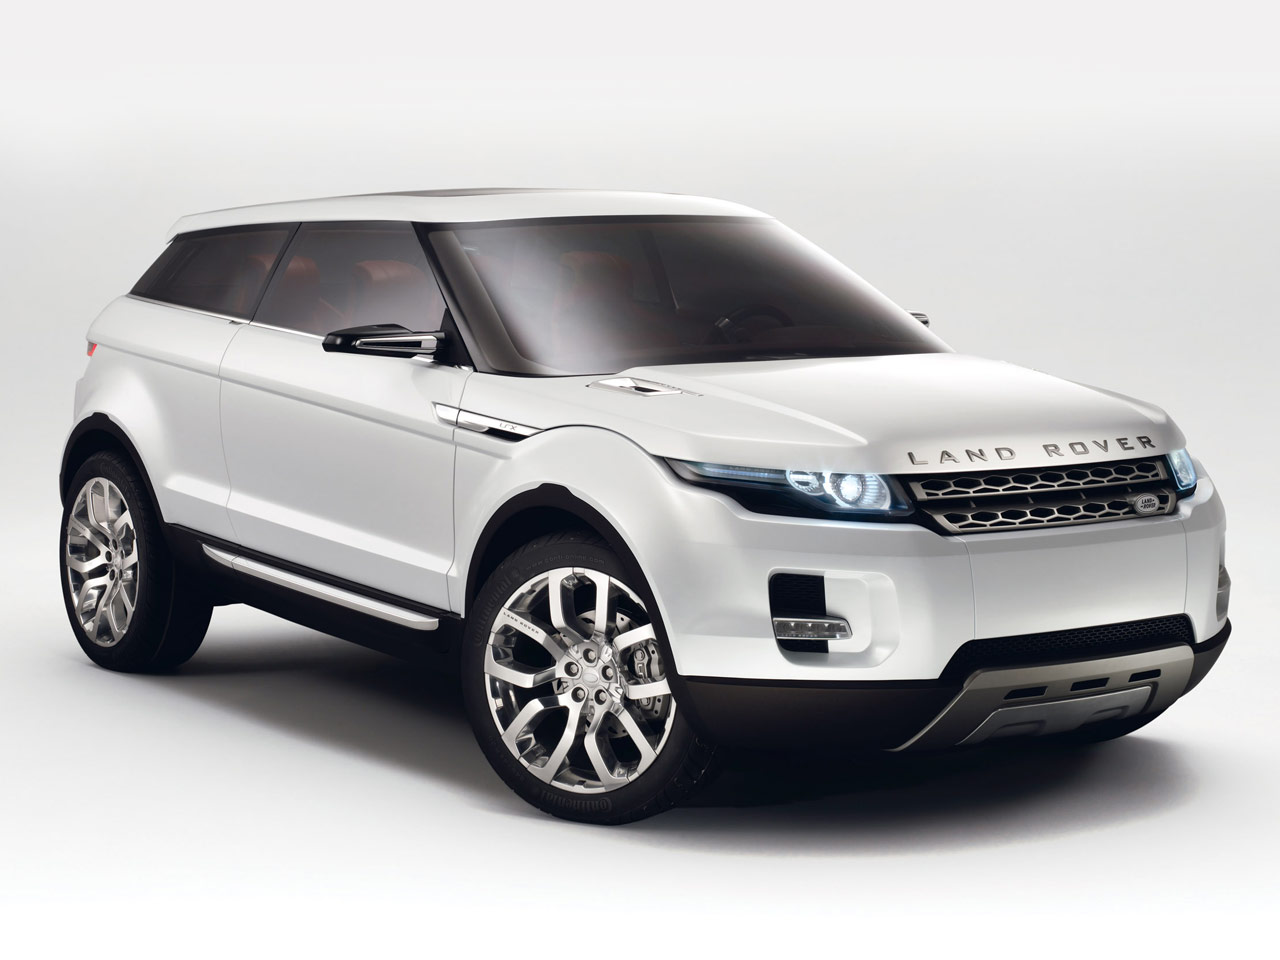 land rover Car Free Download Image Of